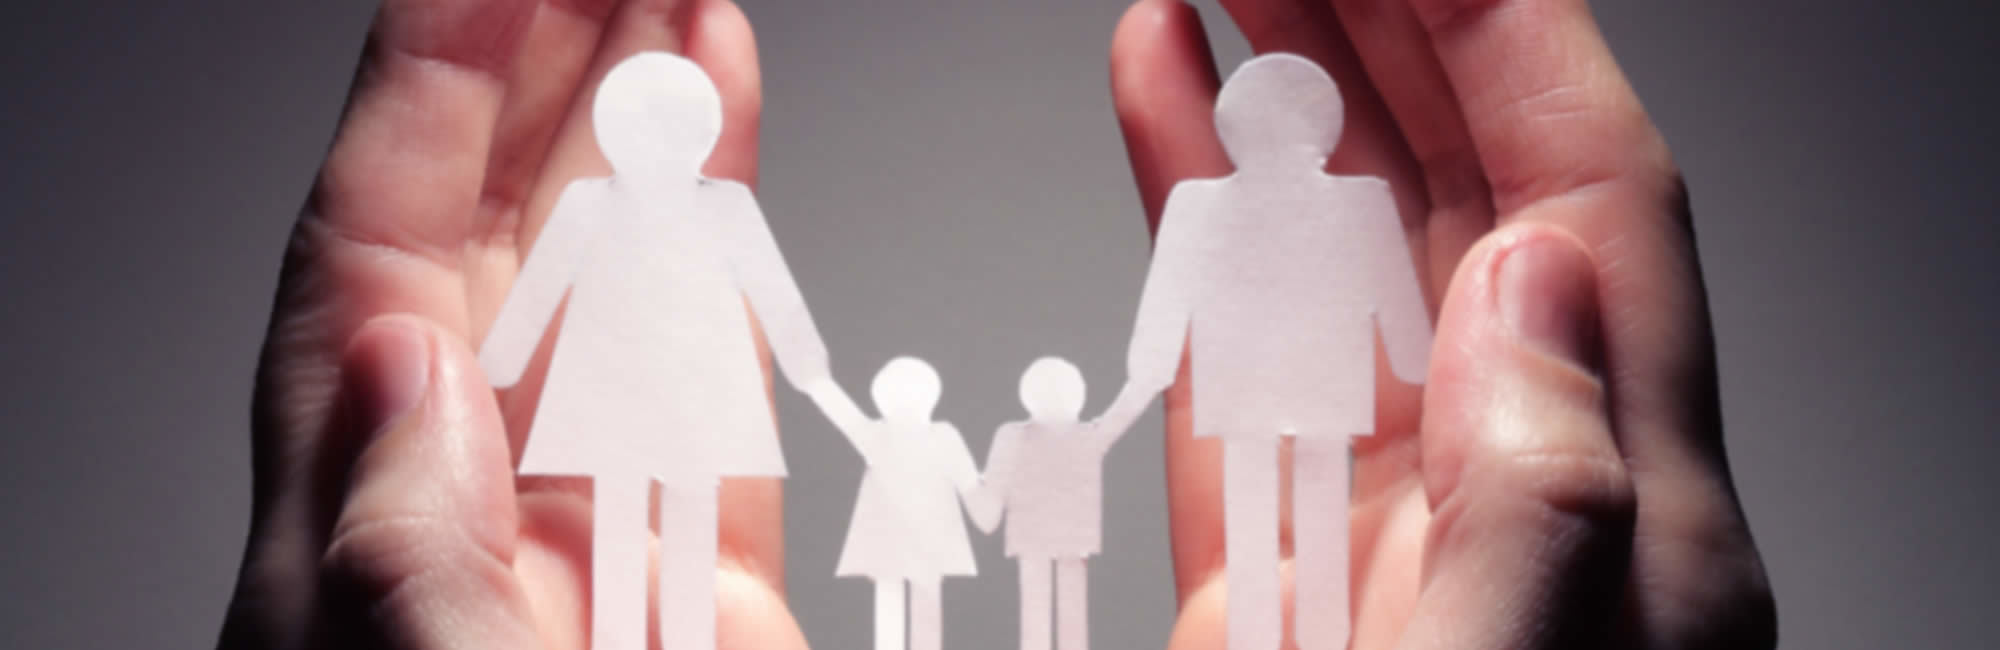 szkesfehrvr single parents Parents without partners is an international nonprofit organization that helps support single mothers and fathers in the united states and canada to join, check out their local chapters and find the nearest one.